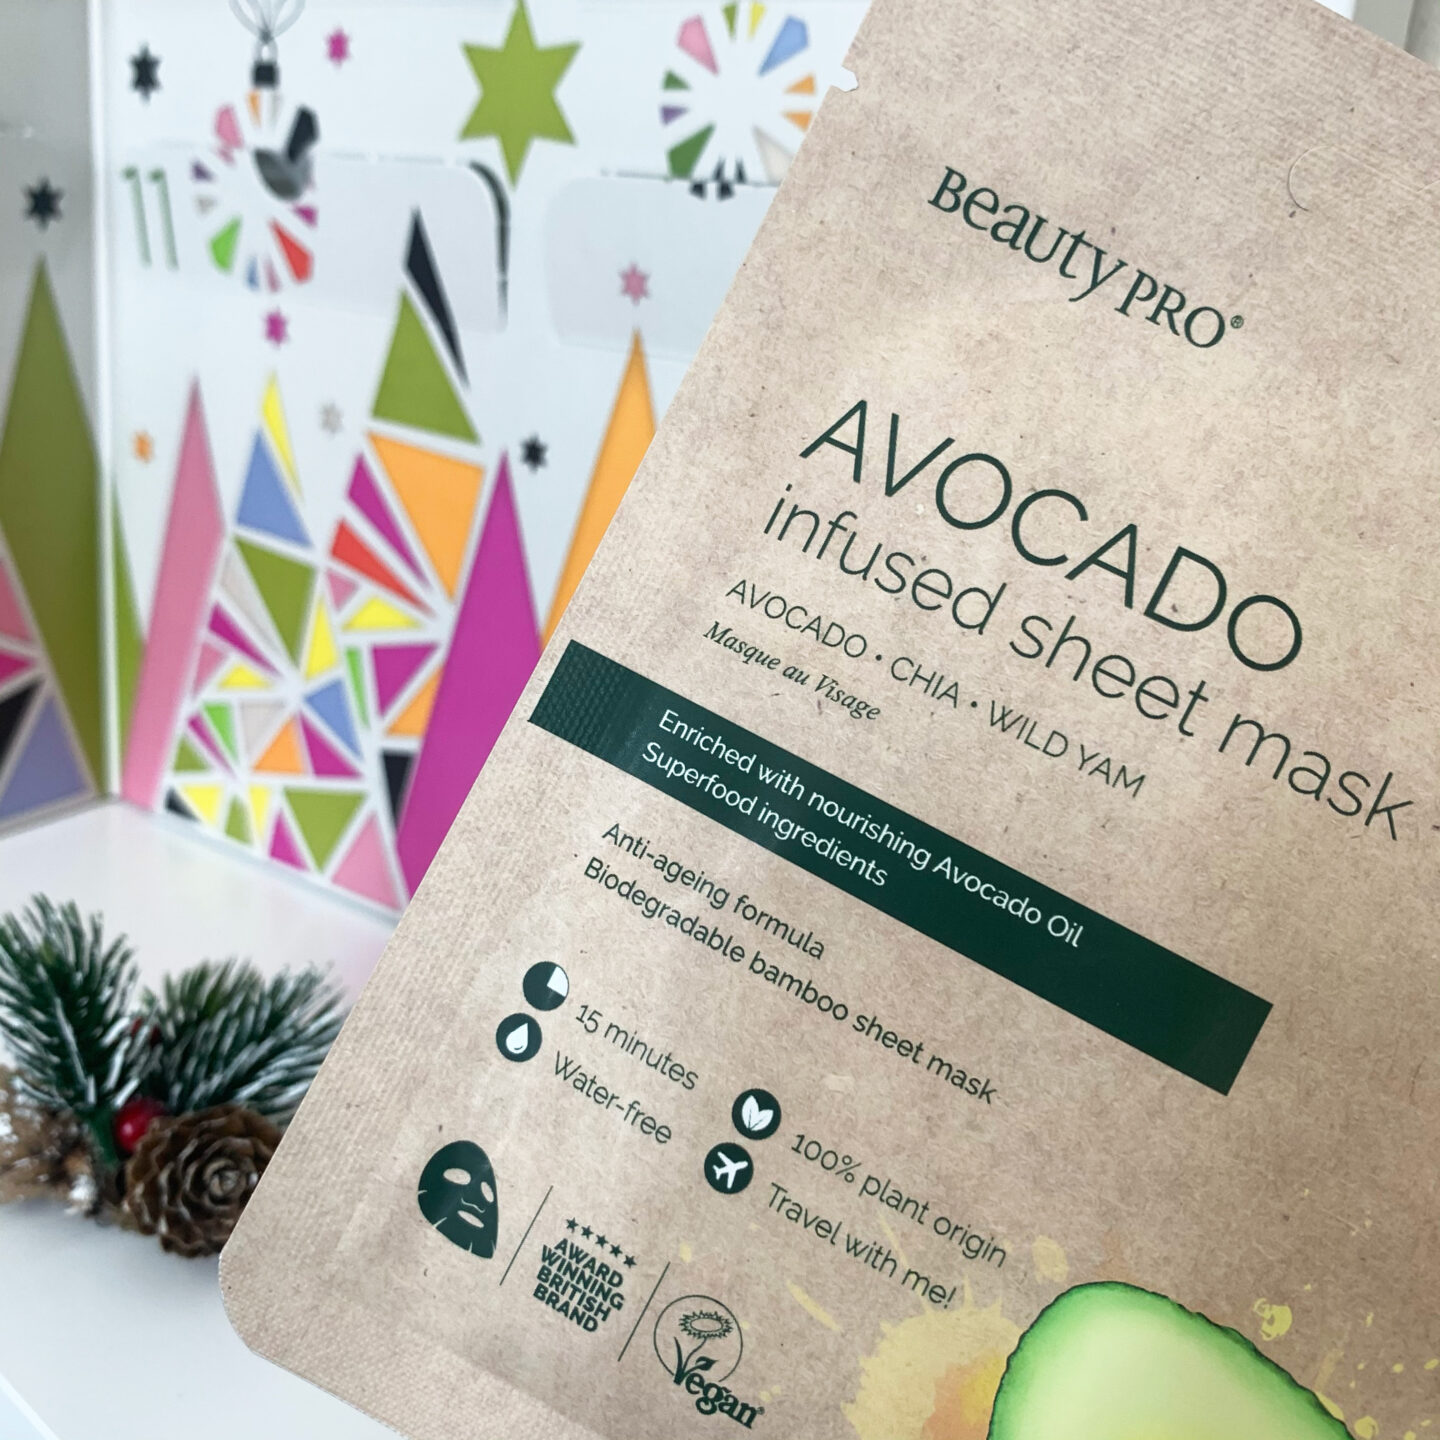 Avocado Infused Sheet Mask  Beauty Pro 12 Days of Christmask Advent Calendar 2020 - Miss Boux